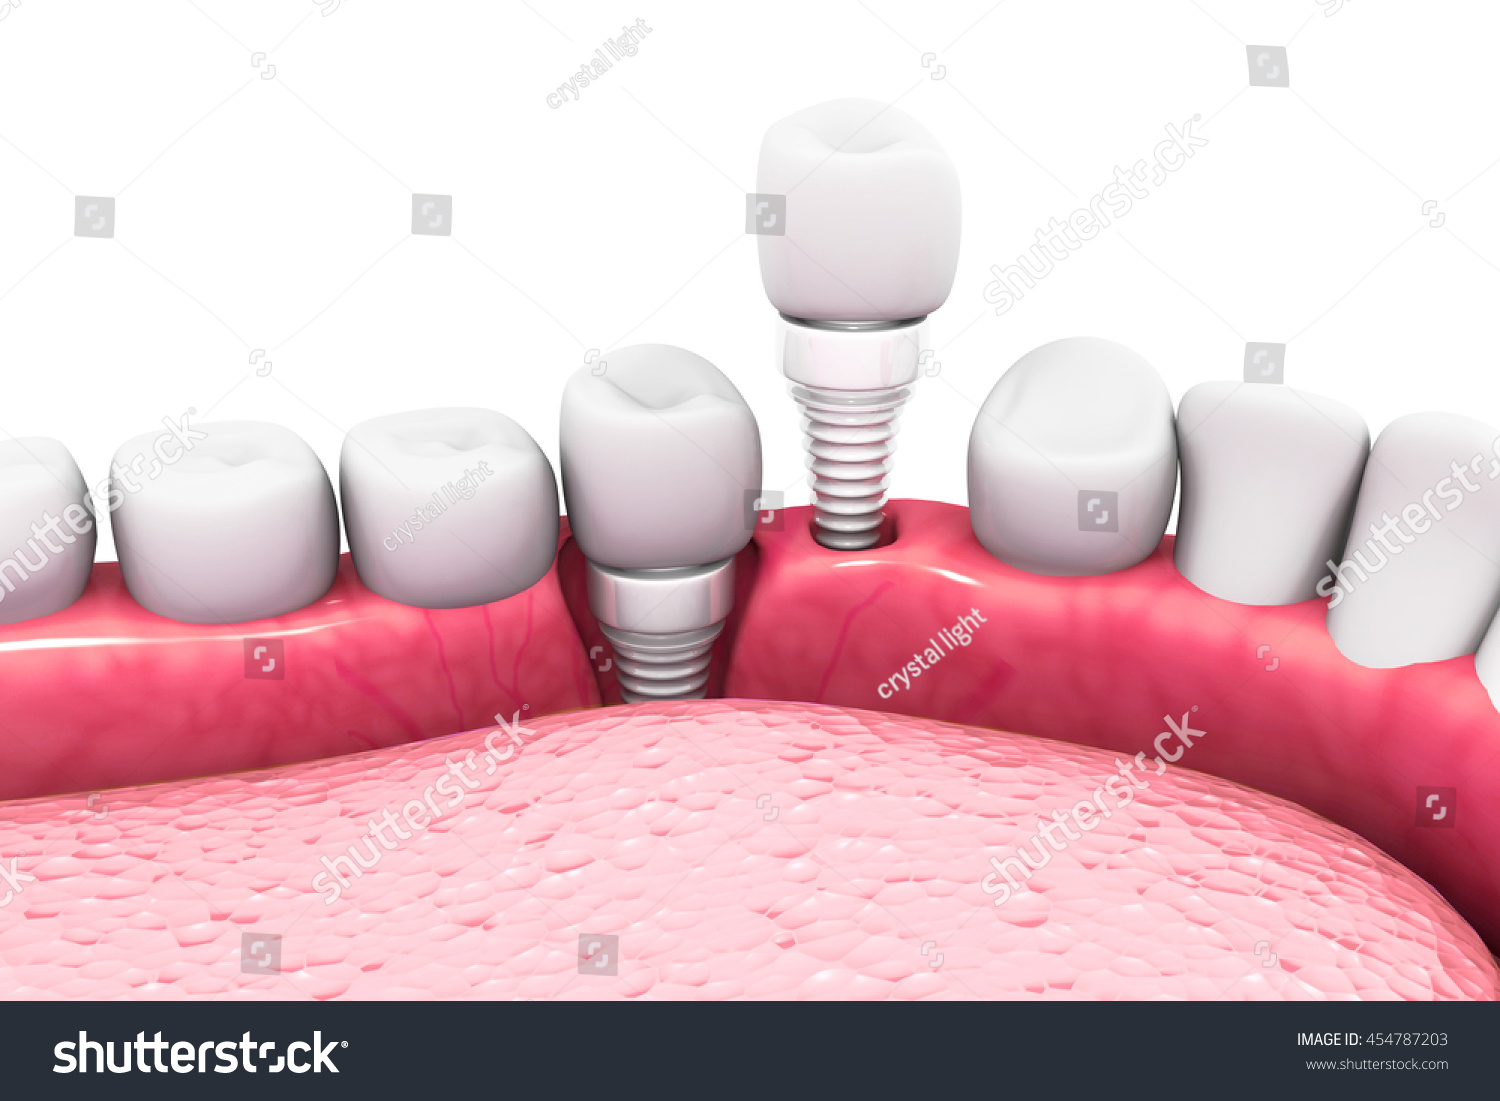 Dental implant structure.3D render